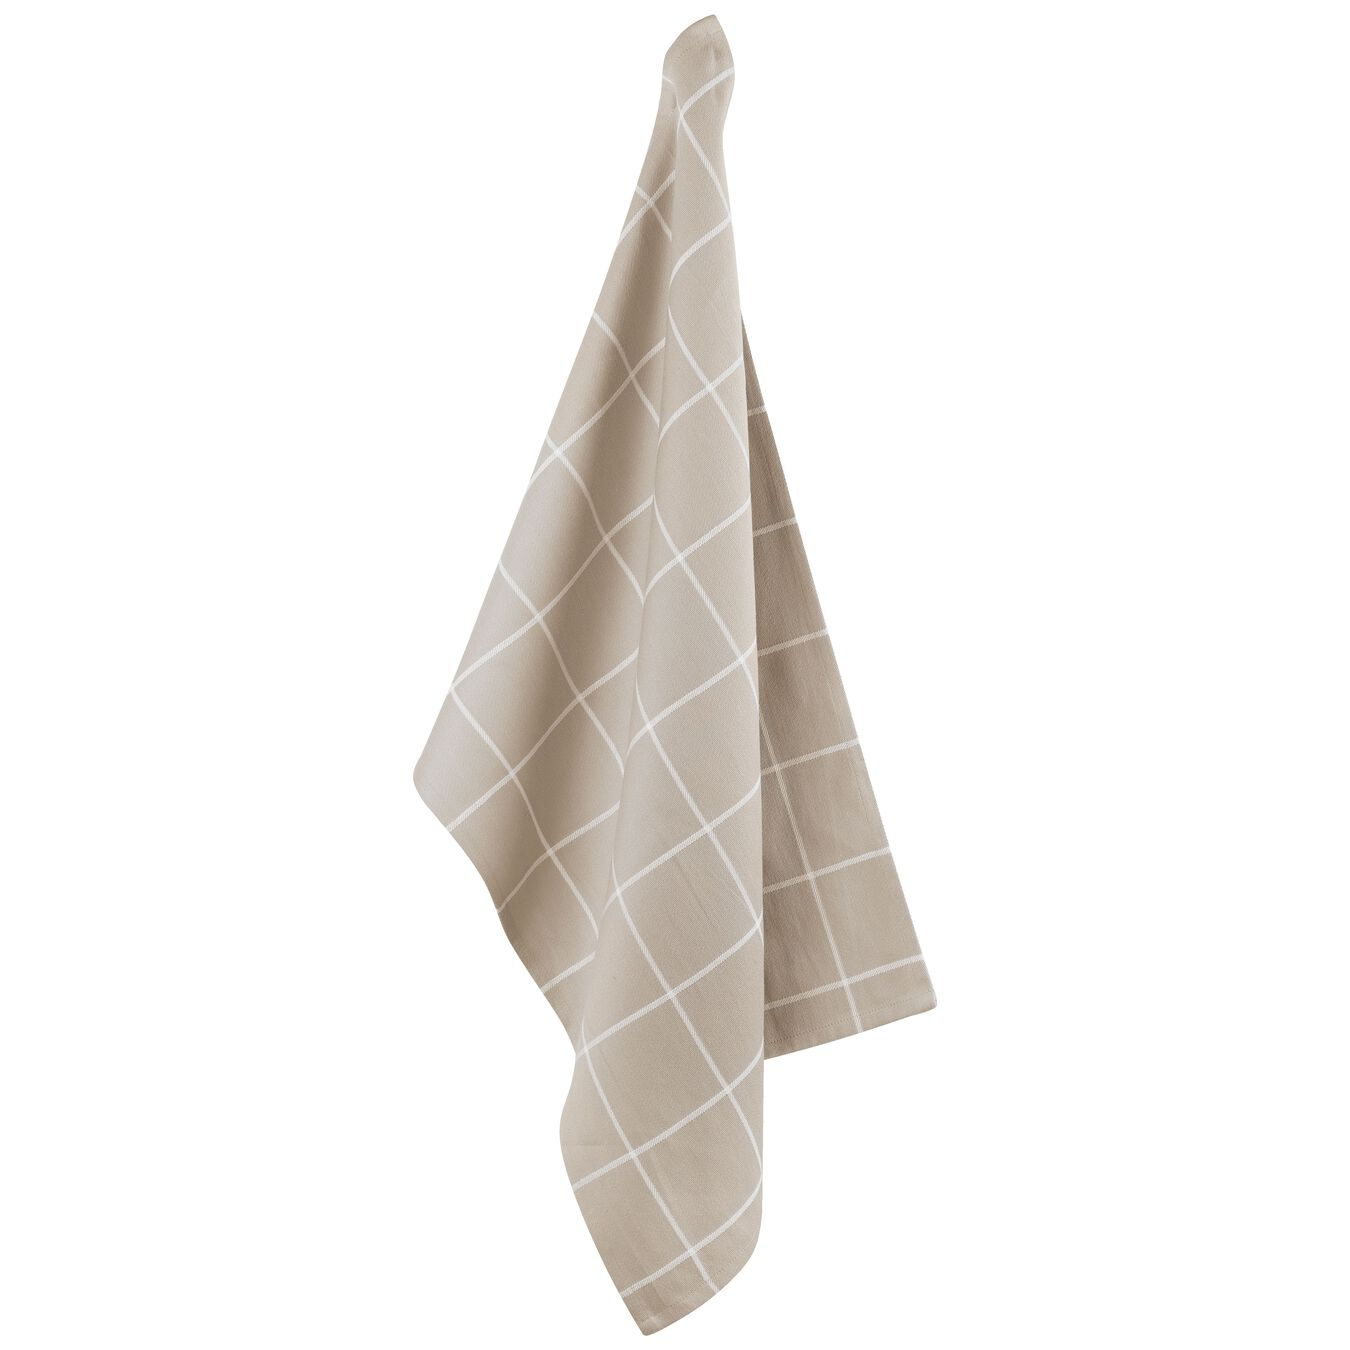 2 Piece Cotton Kitchen towel set checkered, taupe,,large 3